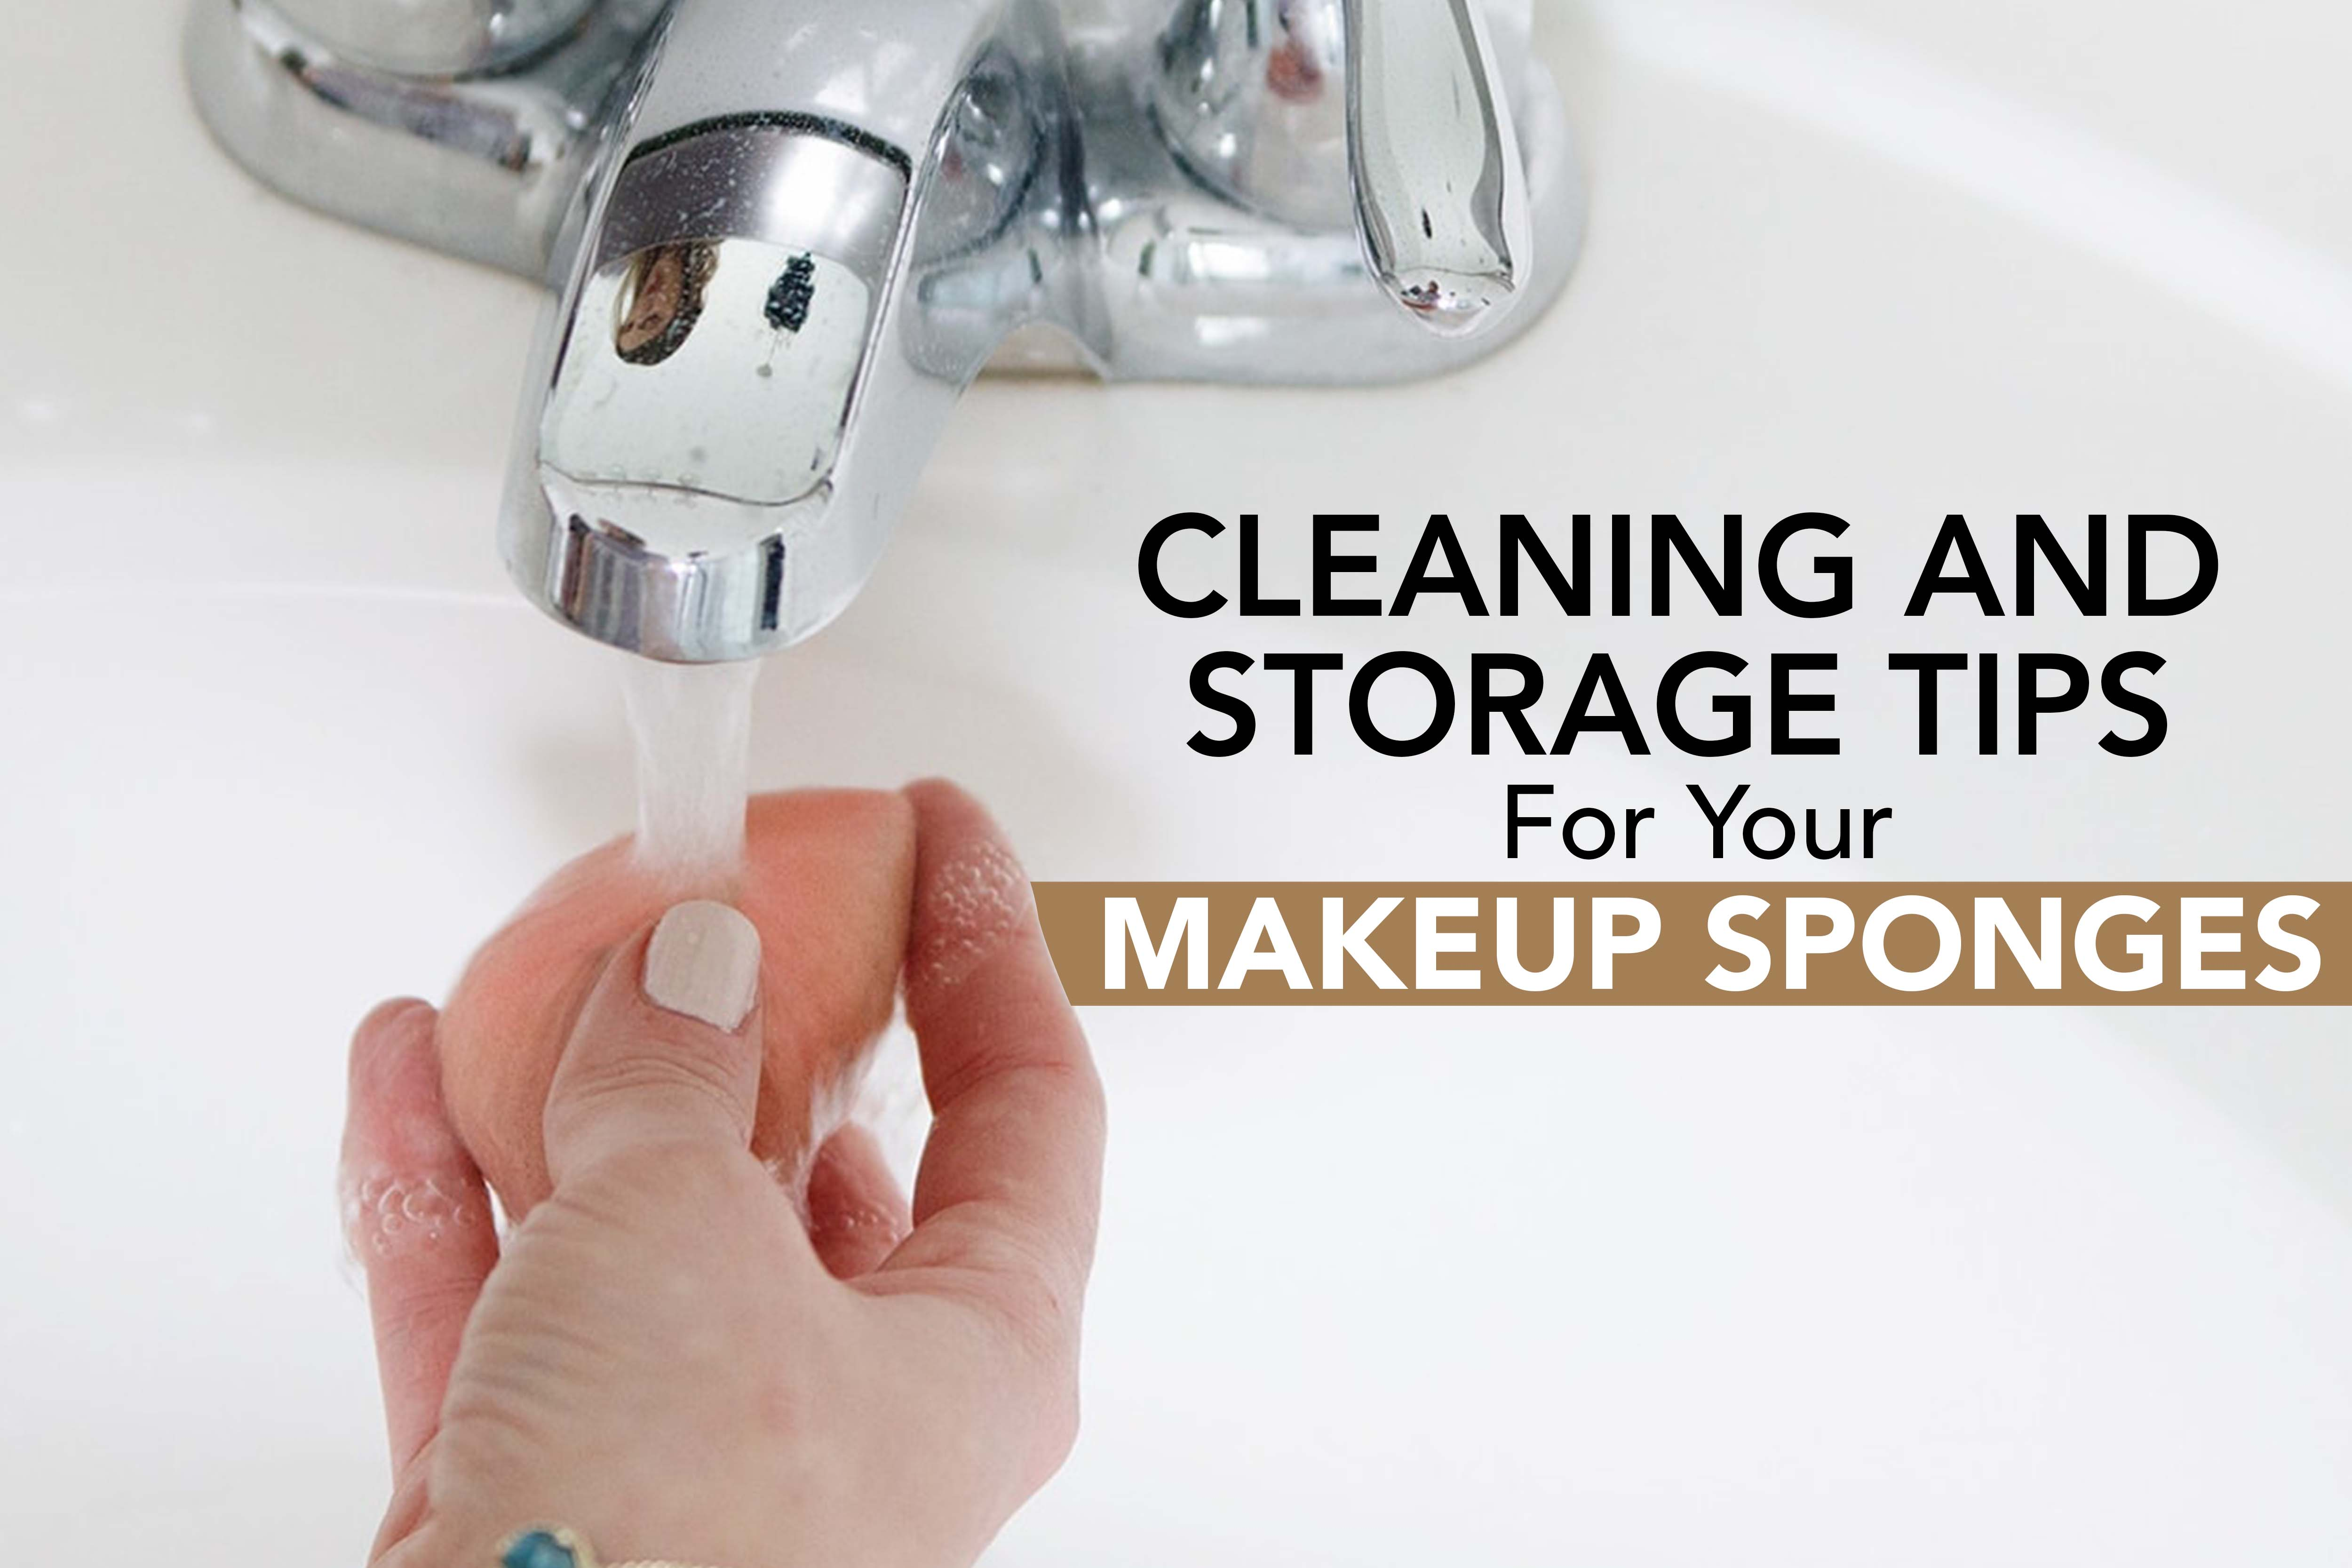 Cleaning and Storage Tips for Makeup Sponges